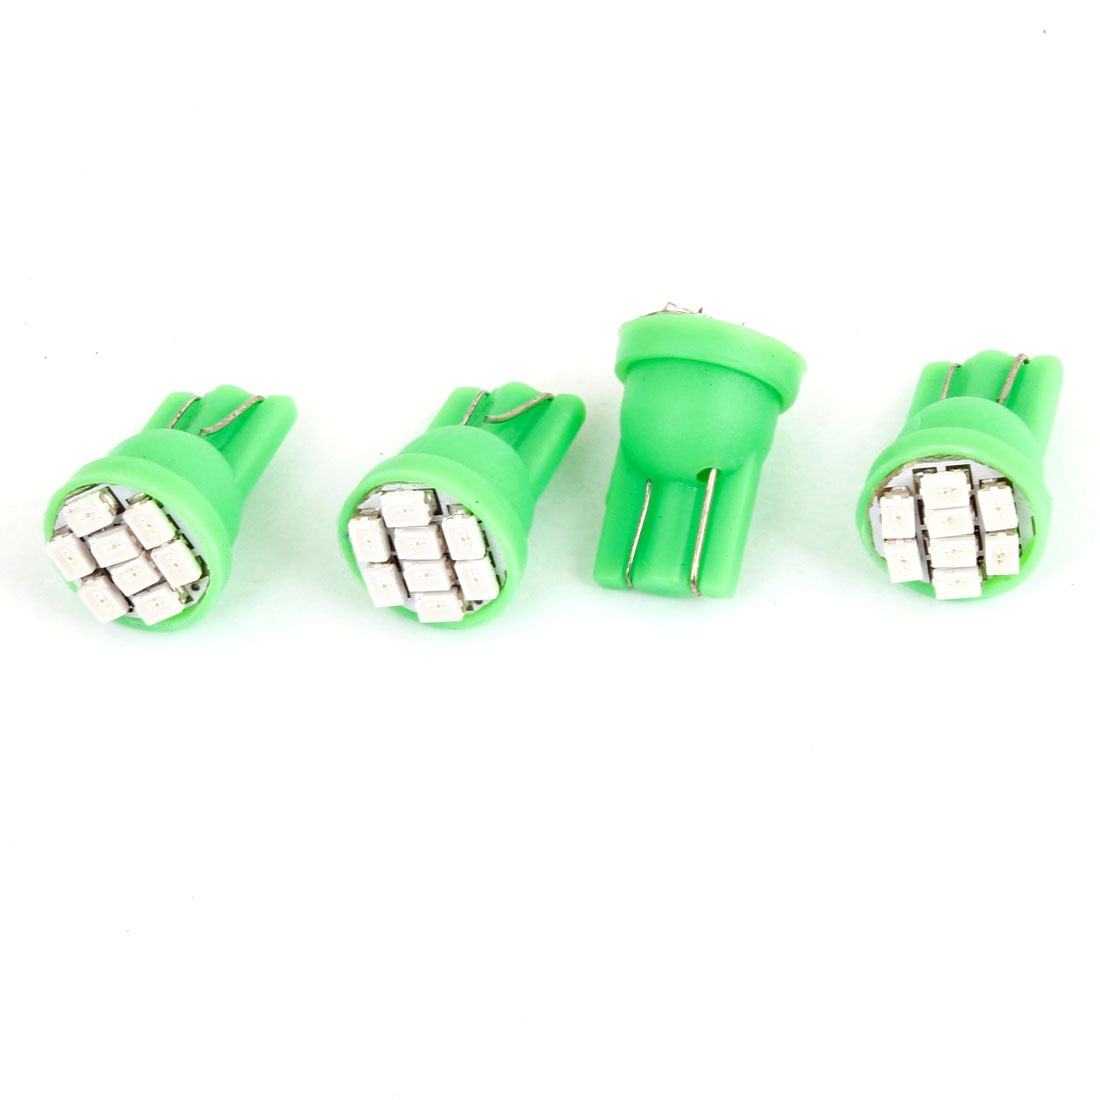 Mini Universal T10 Green Light 8 LED 1206 SMD Dashboard Wedge Bulb 4 Pcs for Car